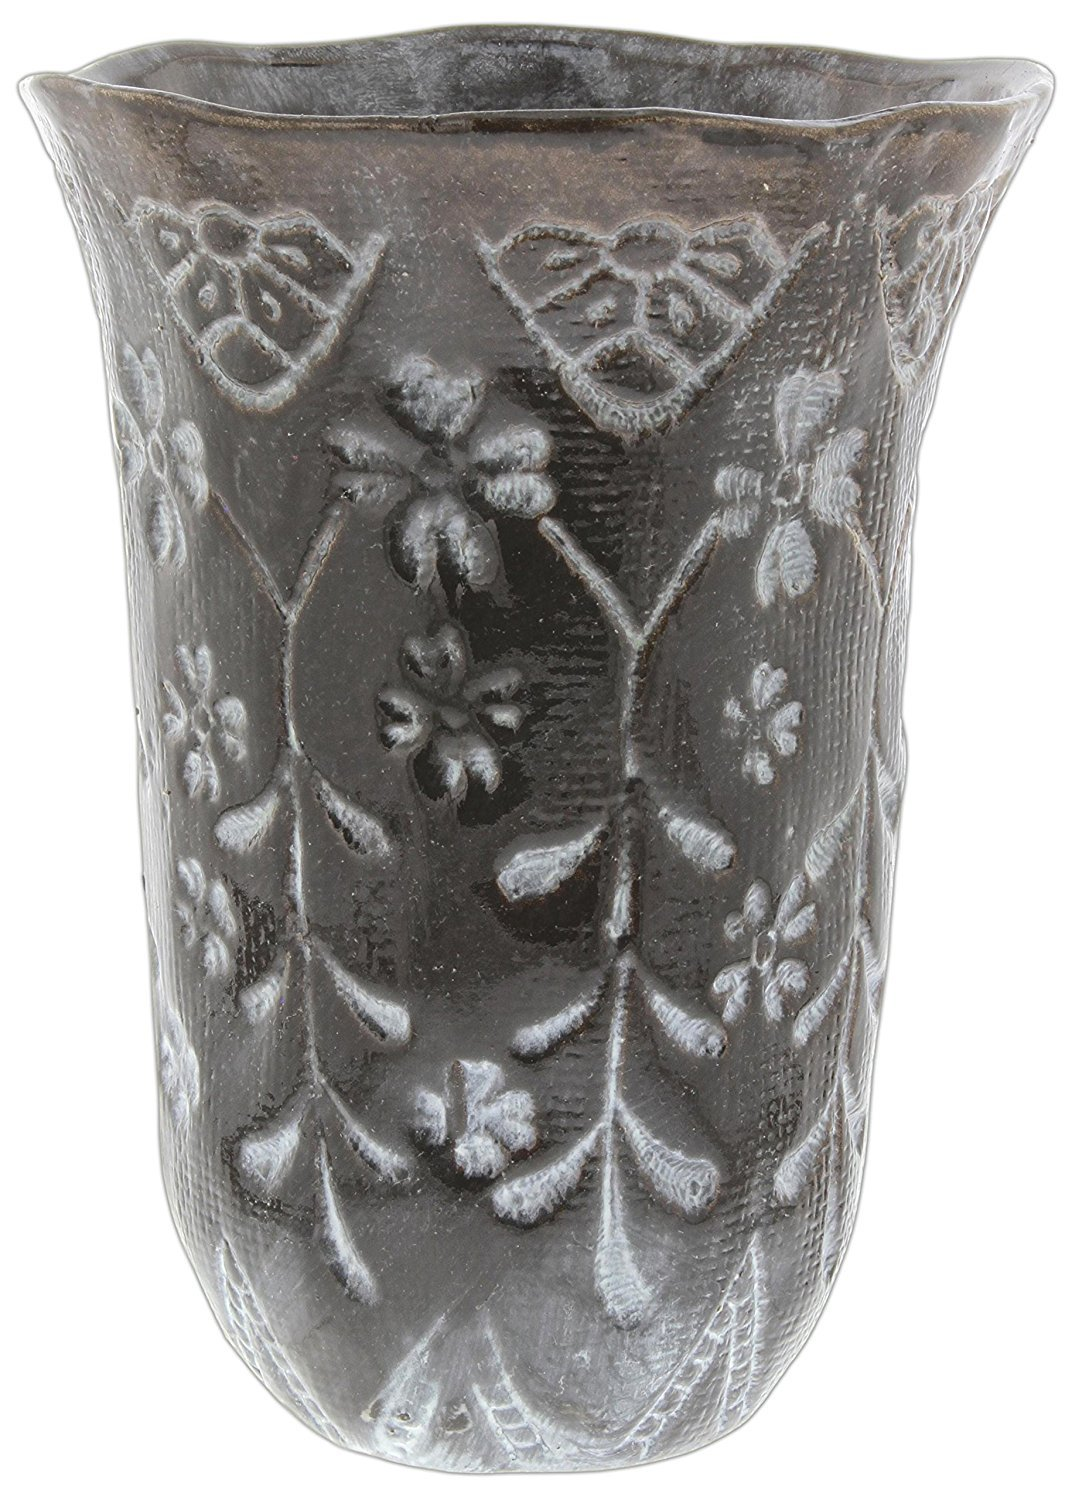 Hill's Park's Brown Ceramic Vase Abstract Hand-Thrown Design, 7.5''